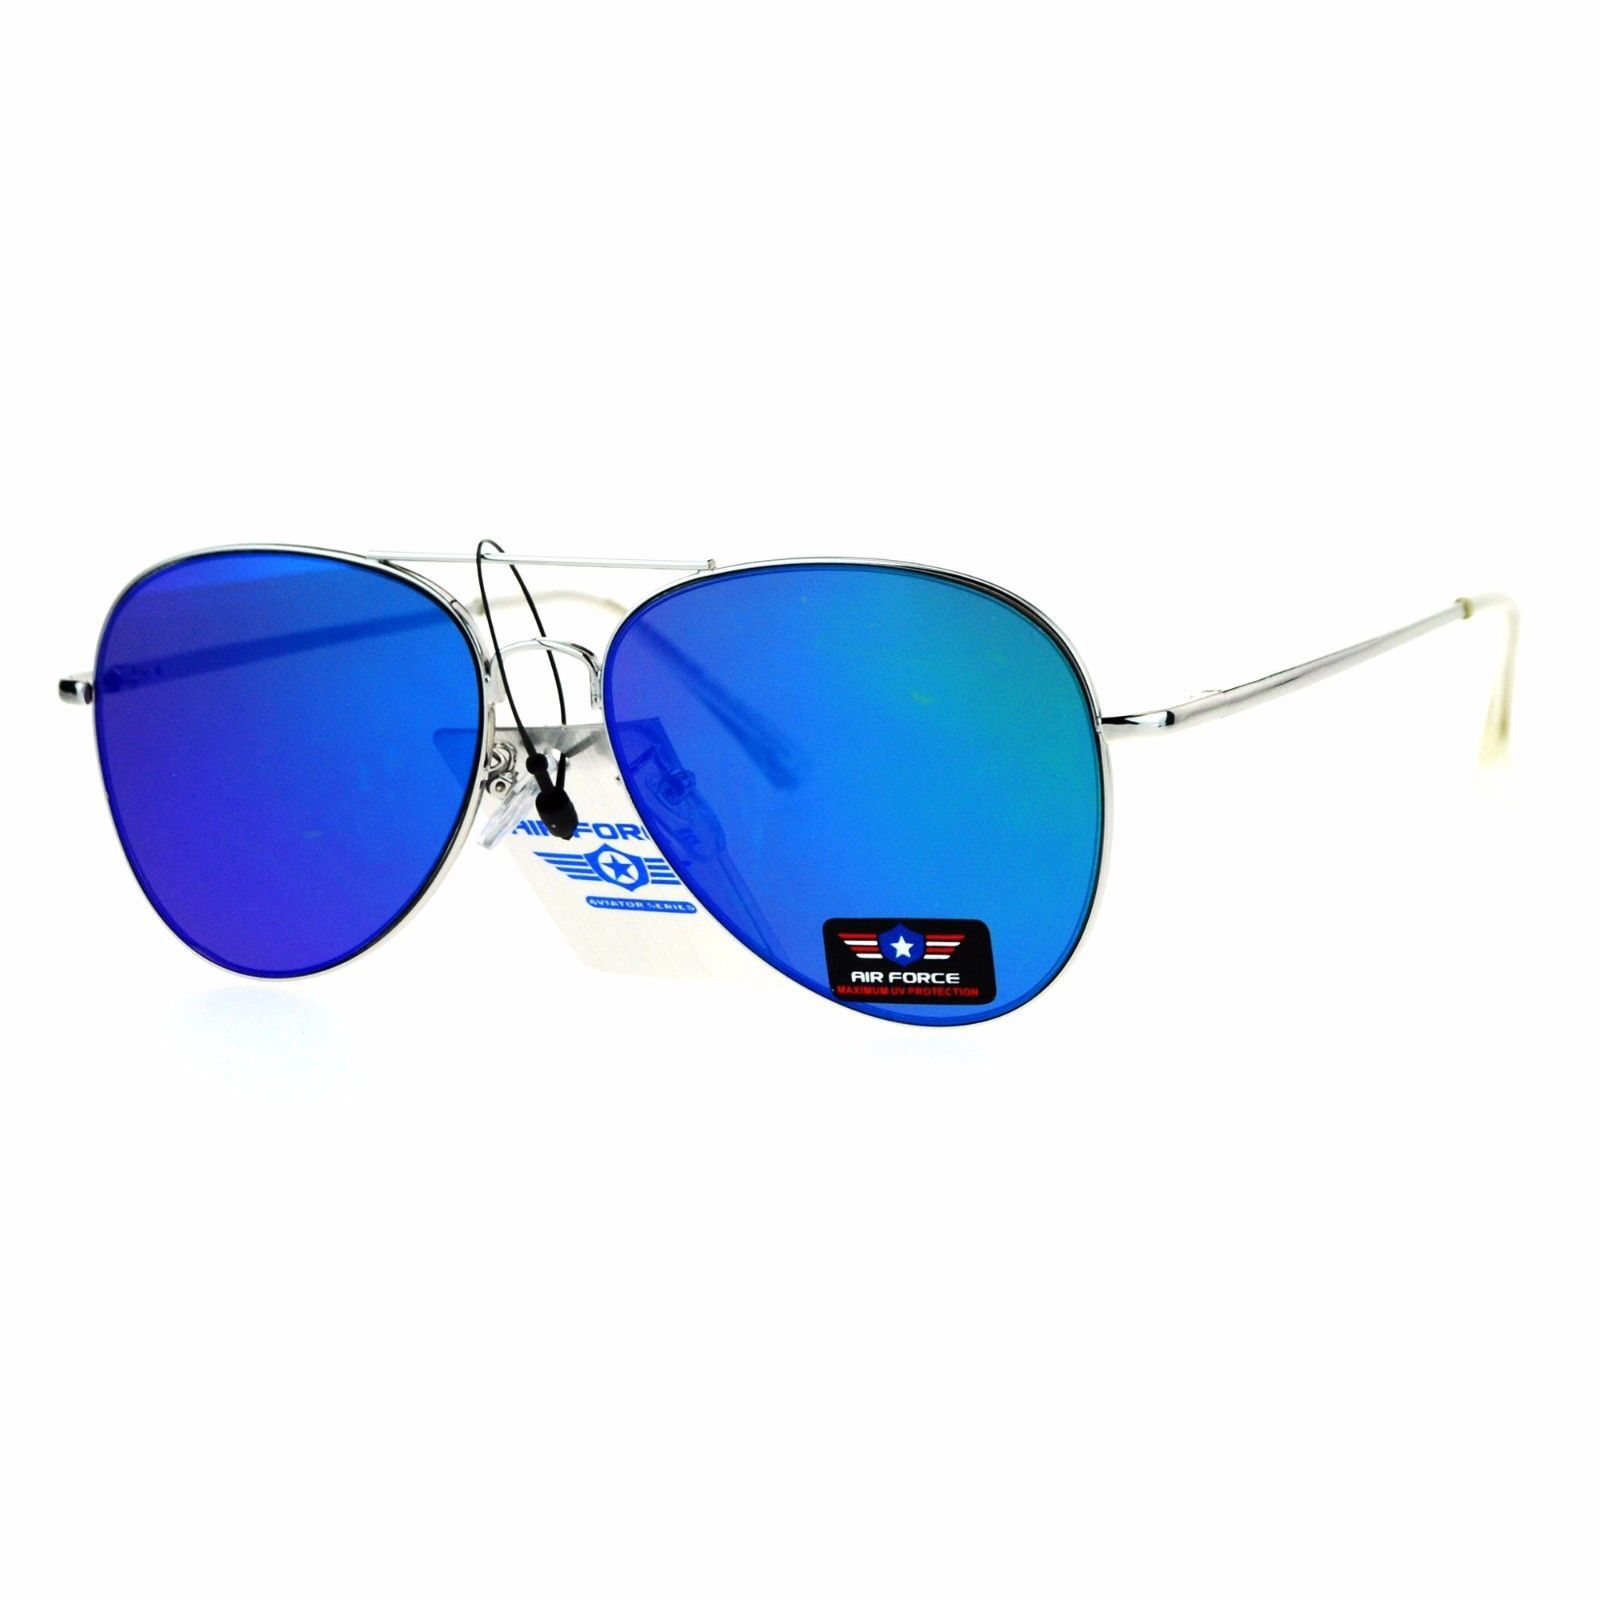 Air Force Aviator Sunglasses Unisex Spring Hinge Metal Frame Mirror Lens